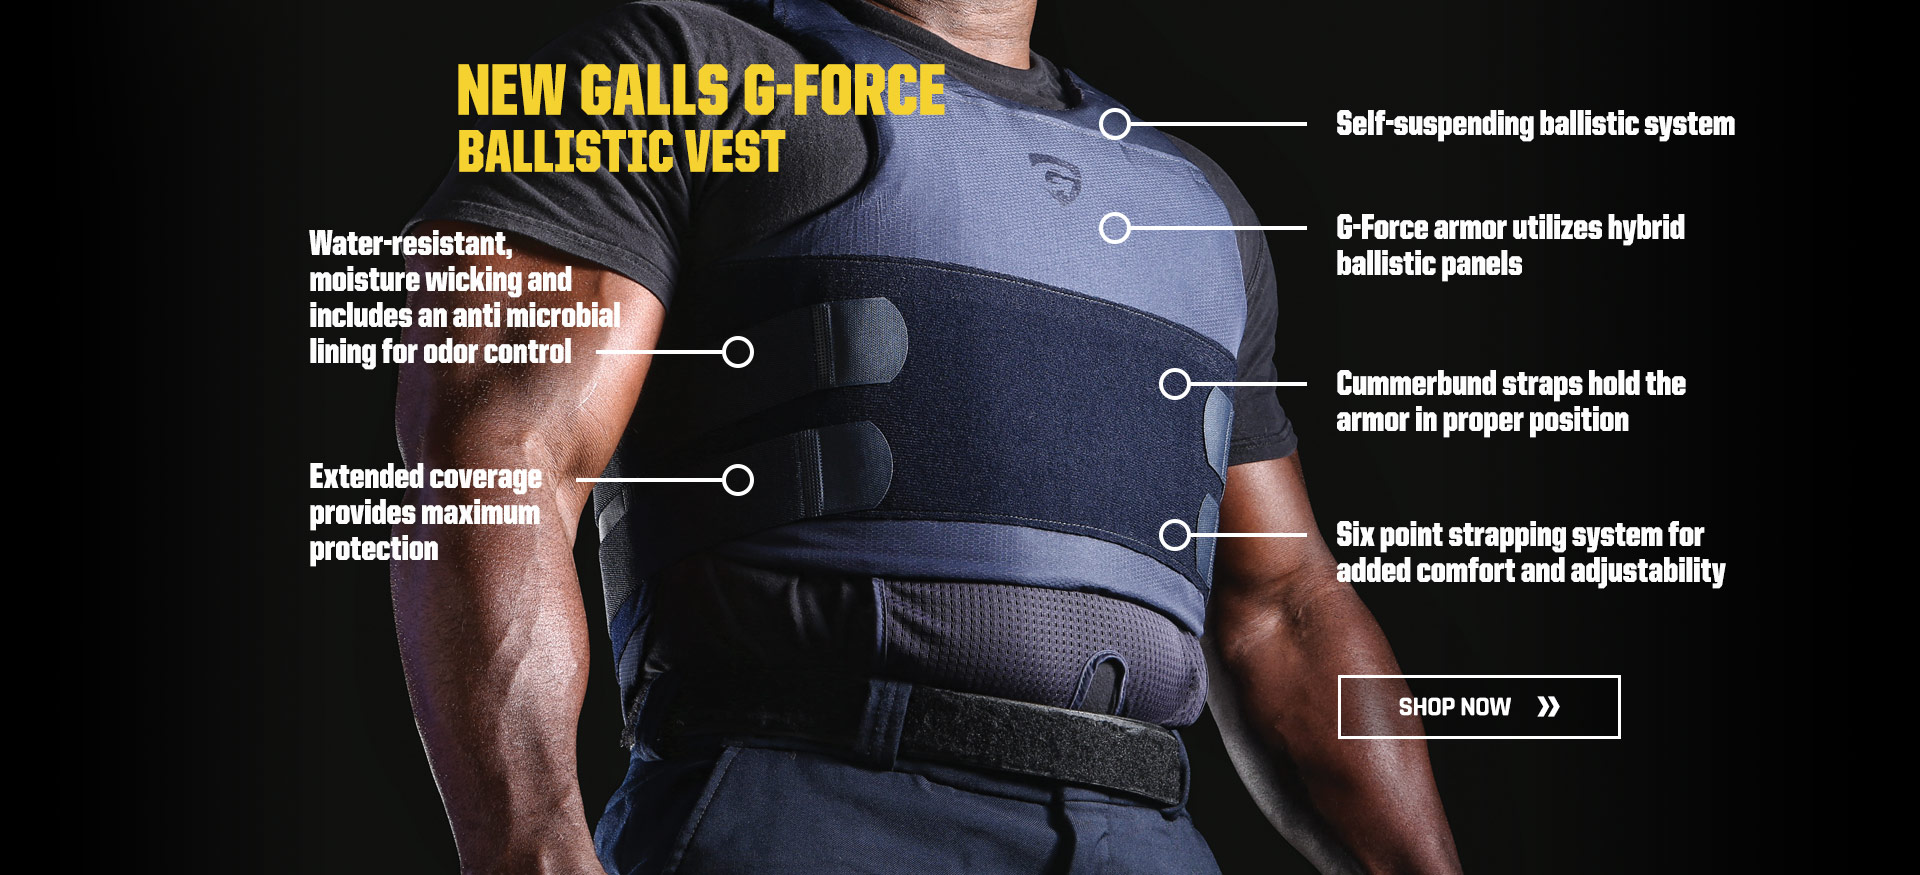 New Galls G-Force ballistic vest